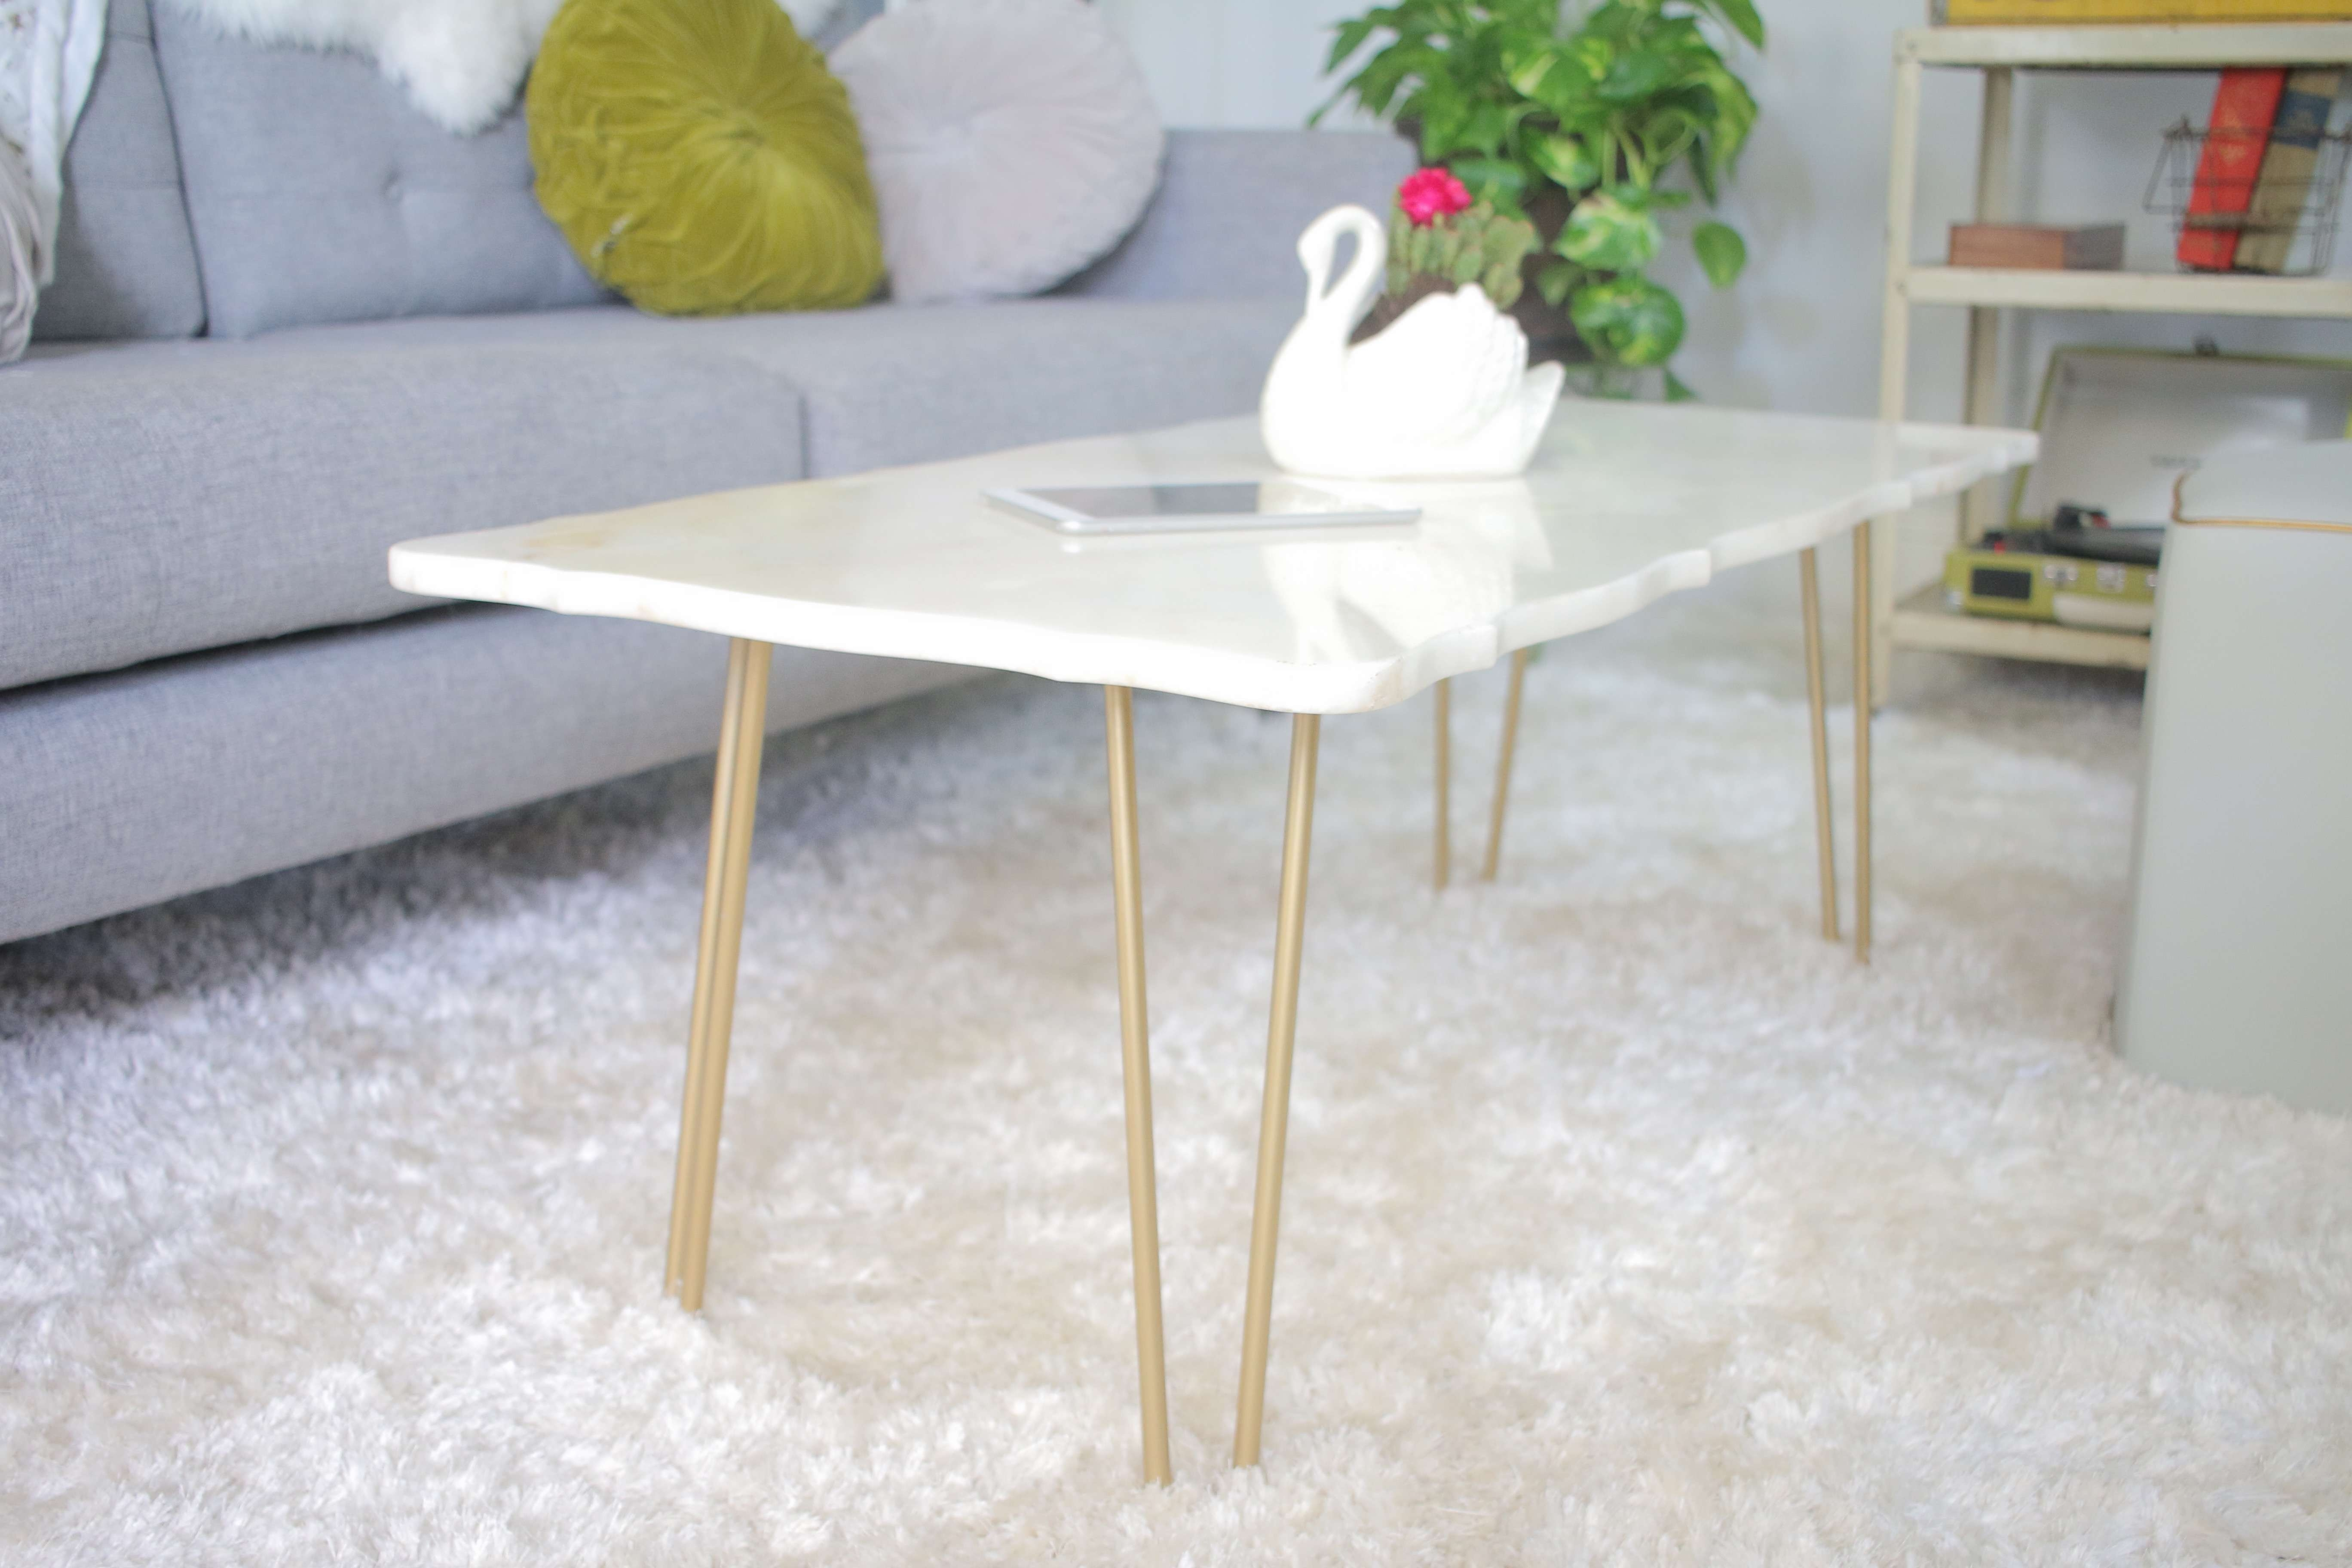 Diy: Marble Coffee Table Inside Best And Newest Marble Coffee Tables (View 3 of 20)